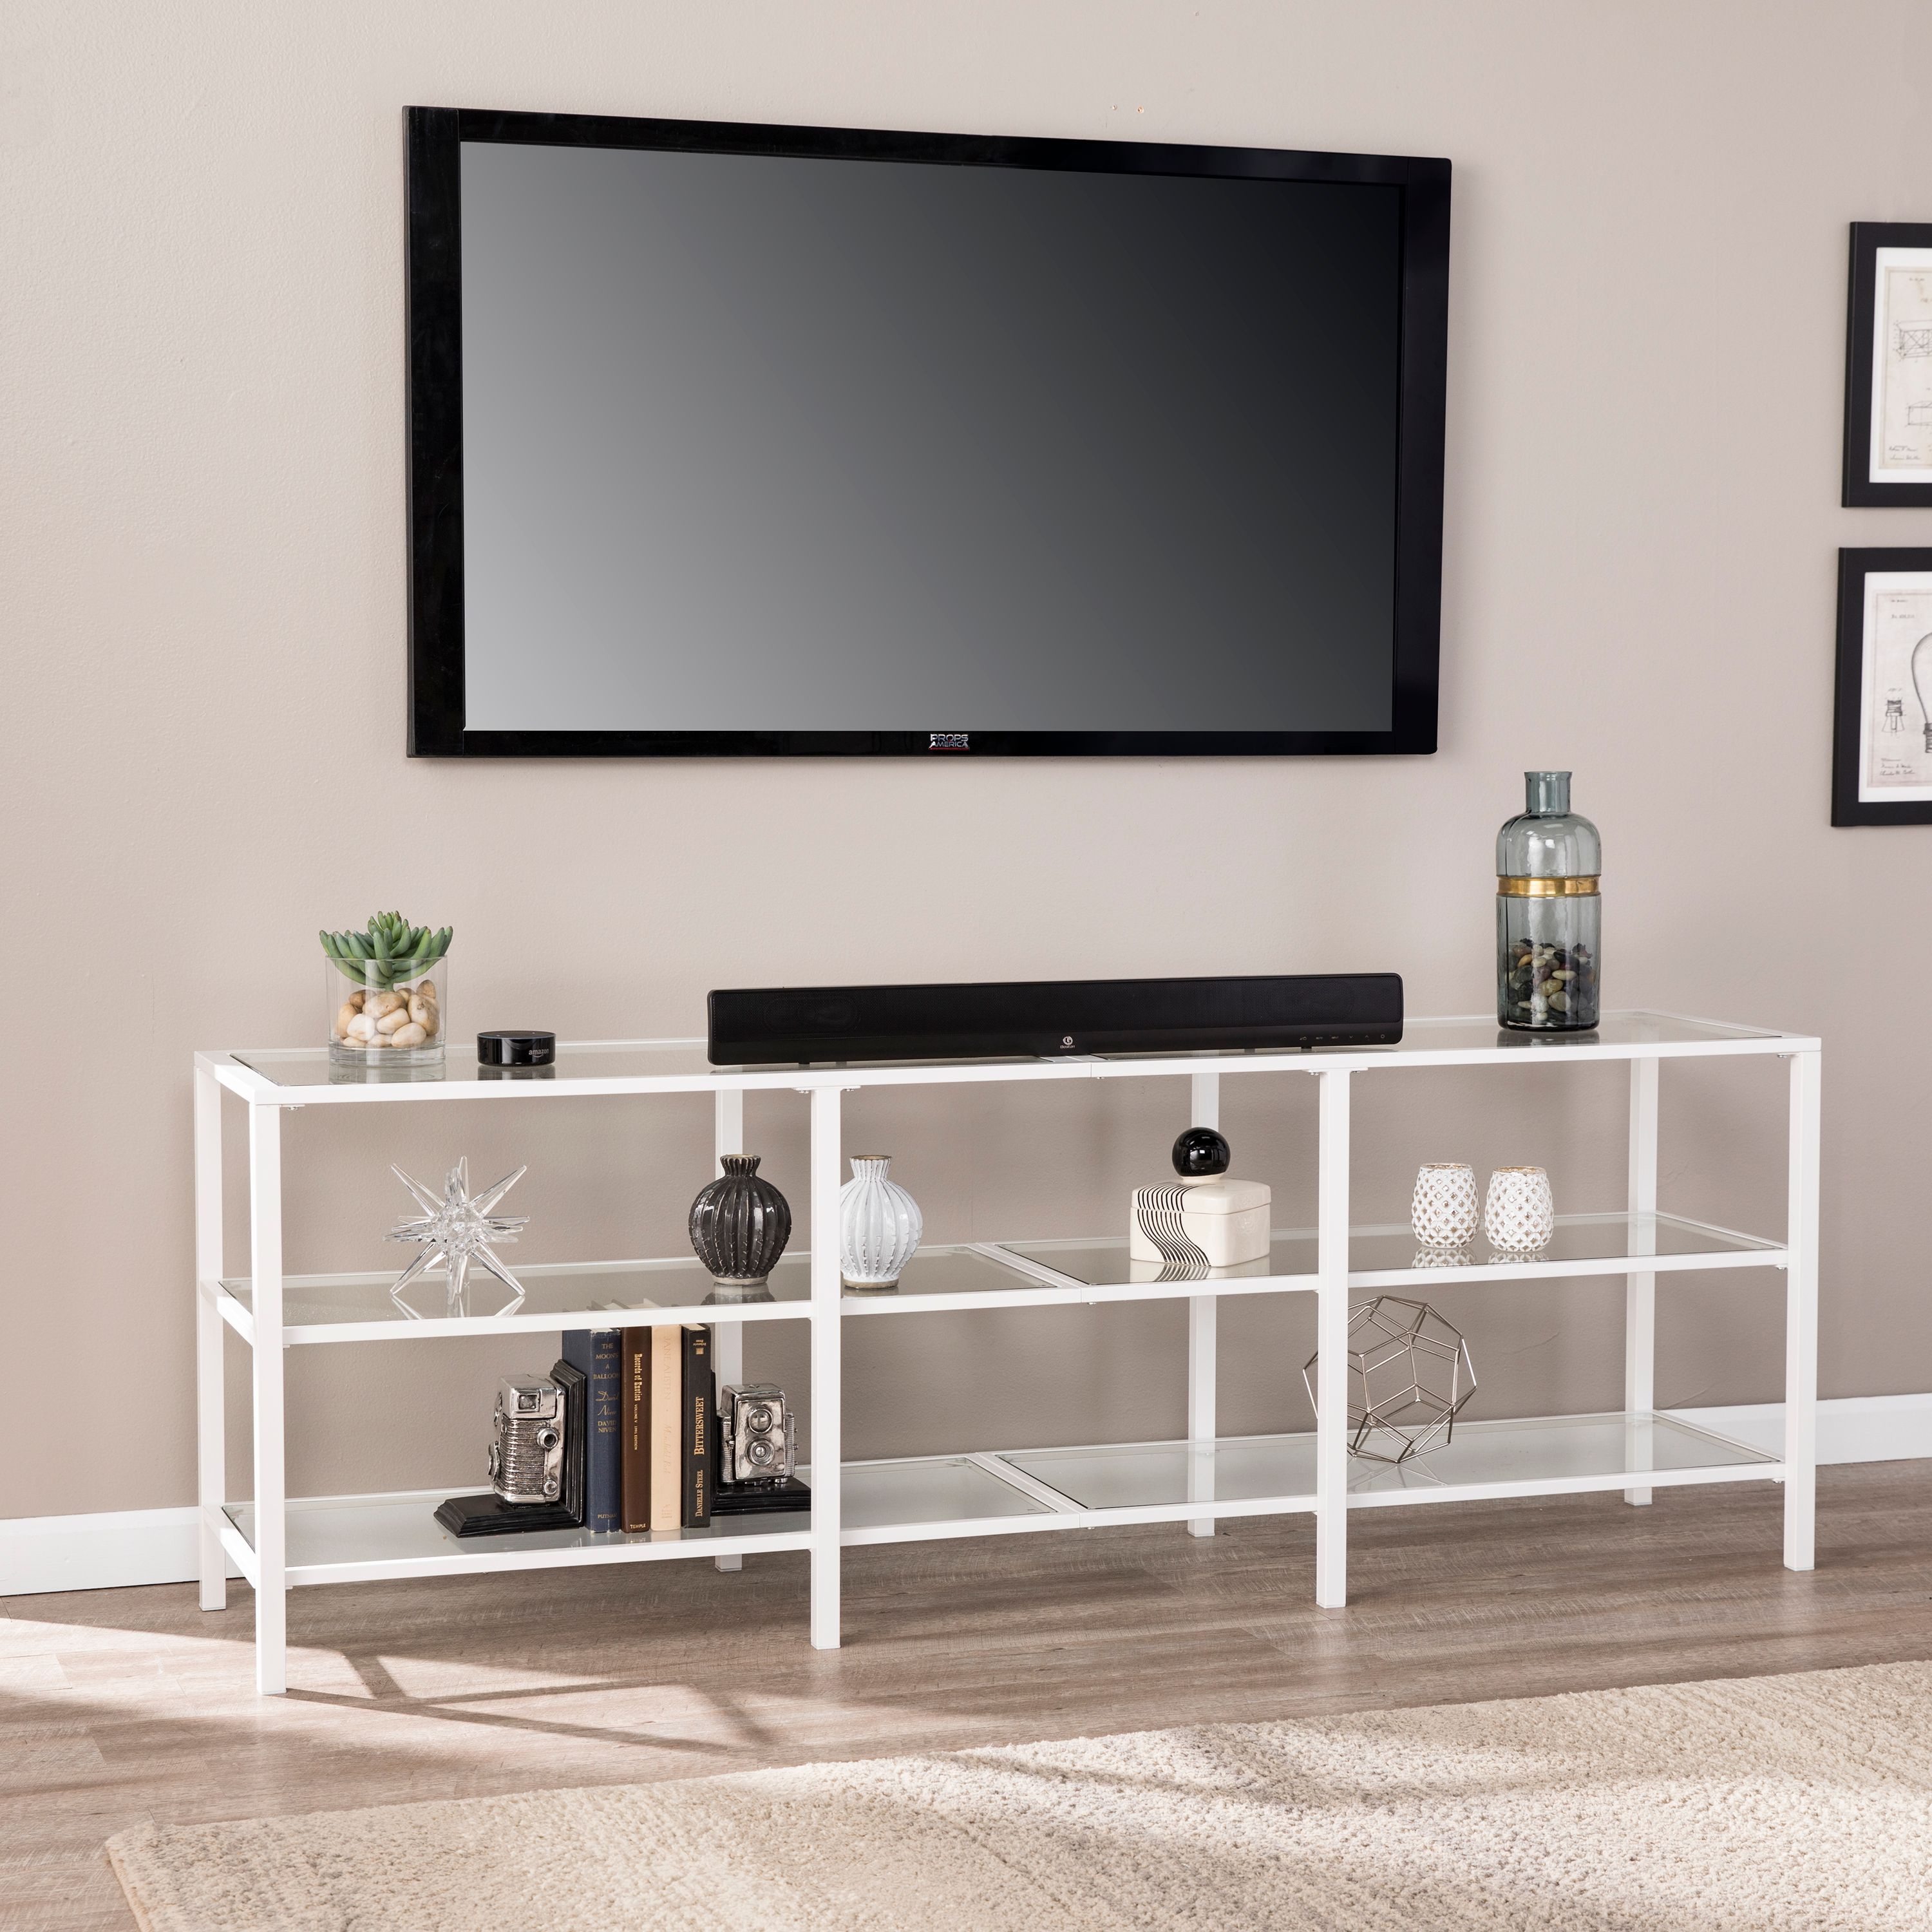 Southern Enterprises Tyler Metal/Glass TV Stand, Transitional Style, Matte White